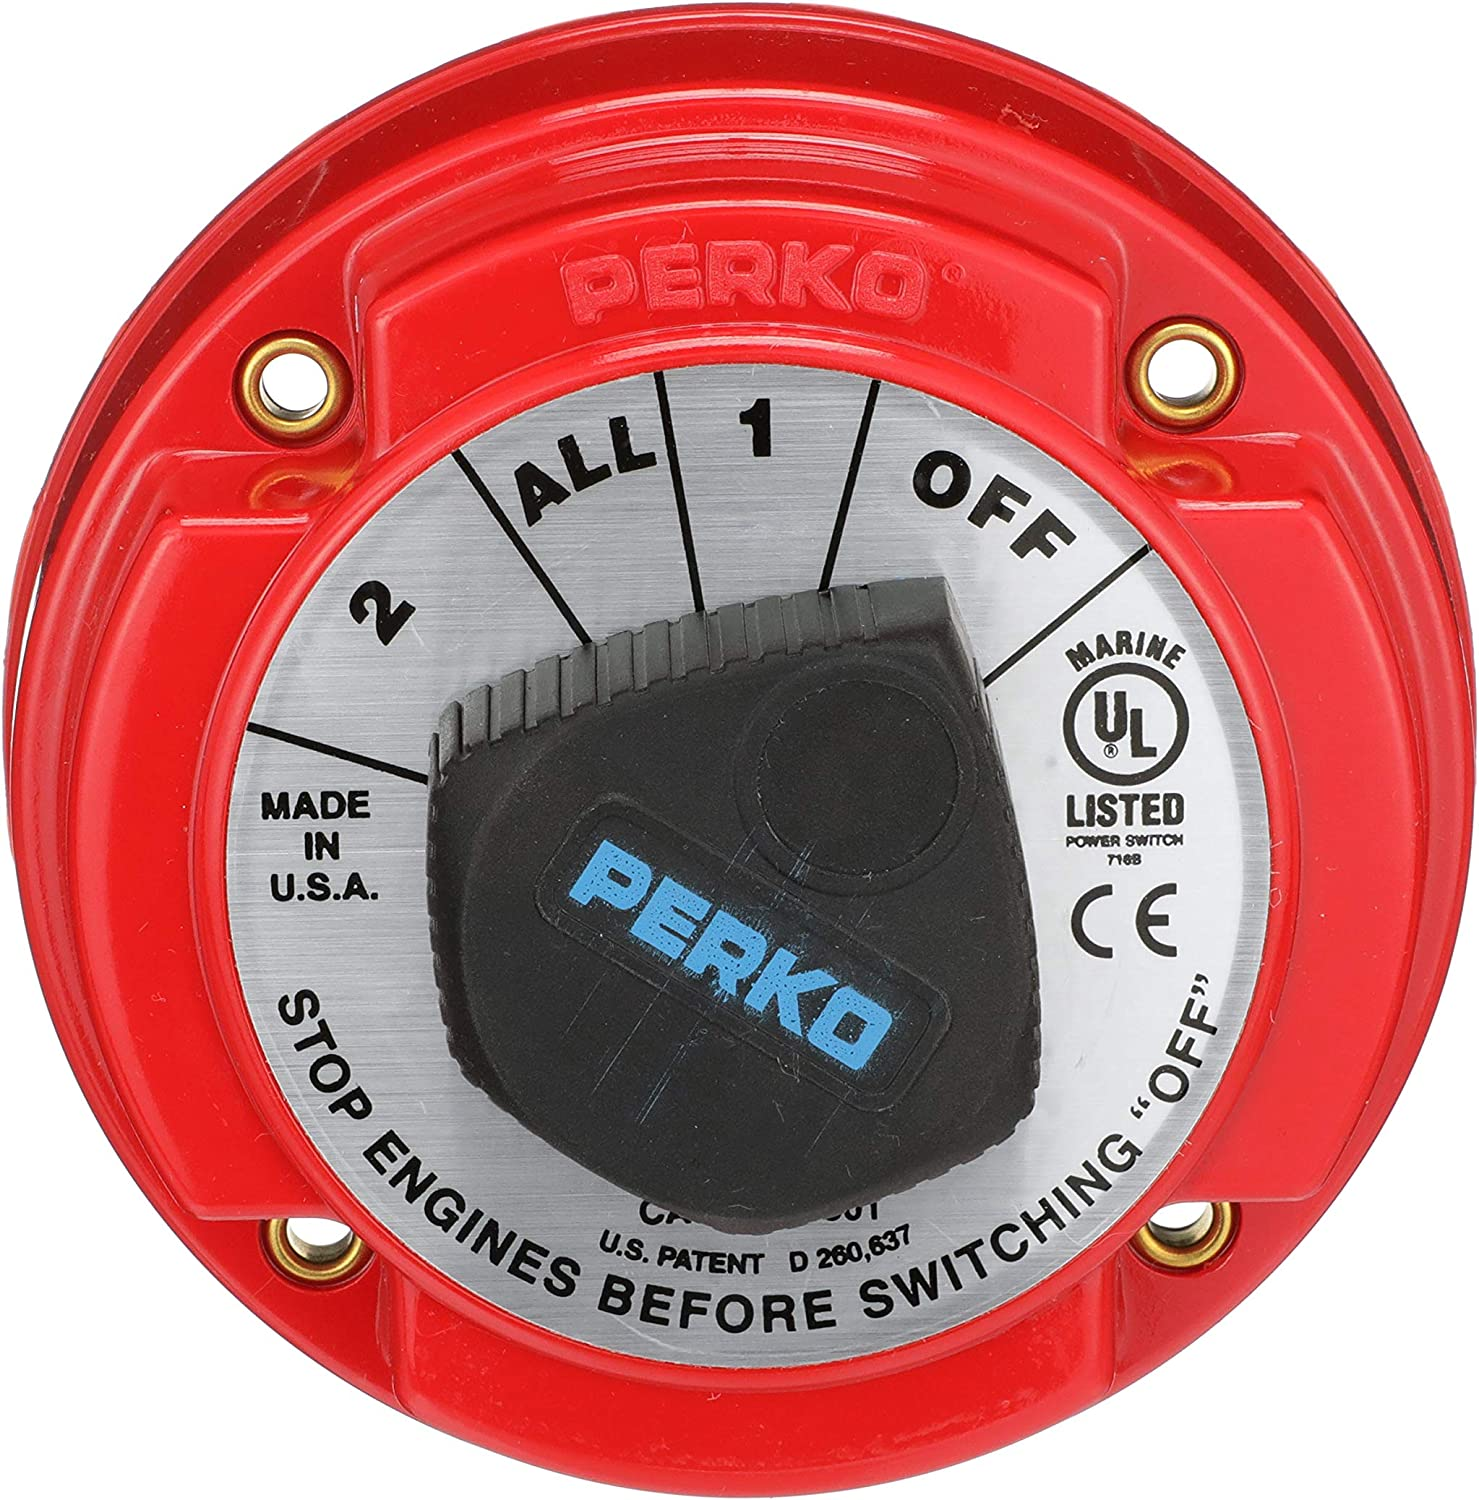 Seachoice 11501 Battery Selector size Red famous Max 44% OFF Switch One